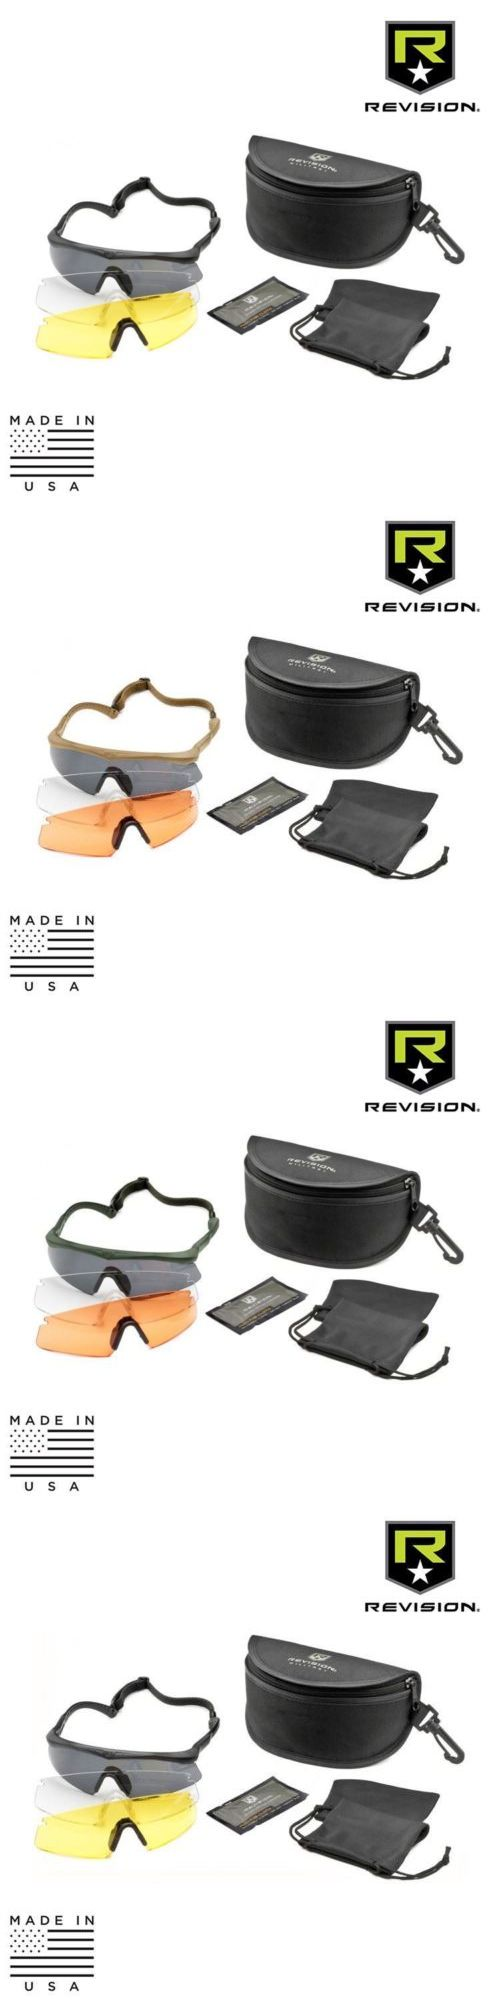 Shooting and Safety Glasses 151549: Revision Military Sawfly Eyewear System - Deluxe Kit -> BUY IT NOW ONLY: $99.99 on eBay!